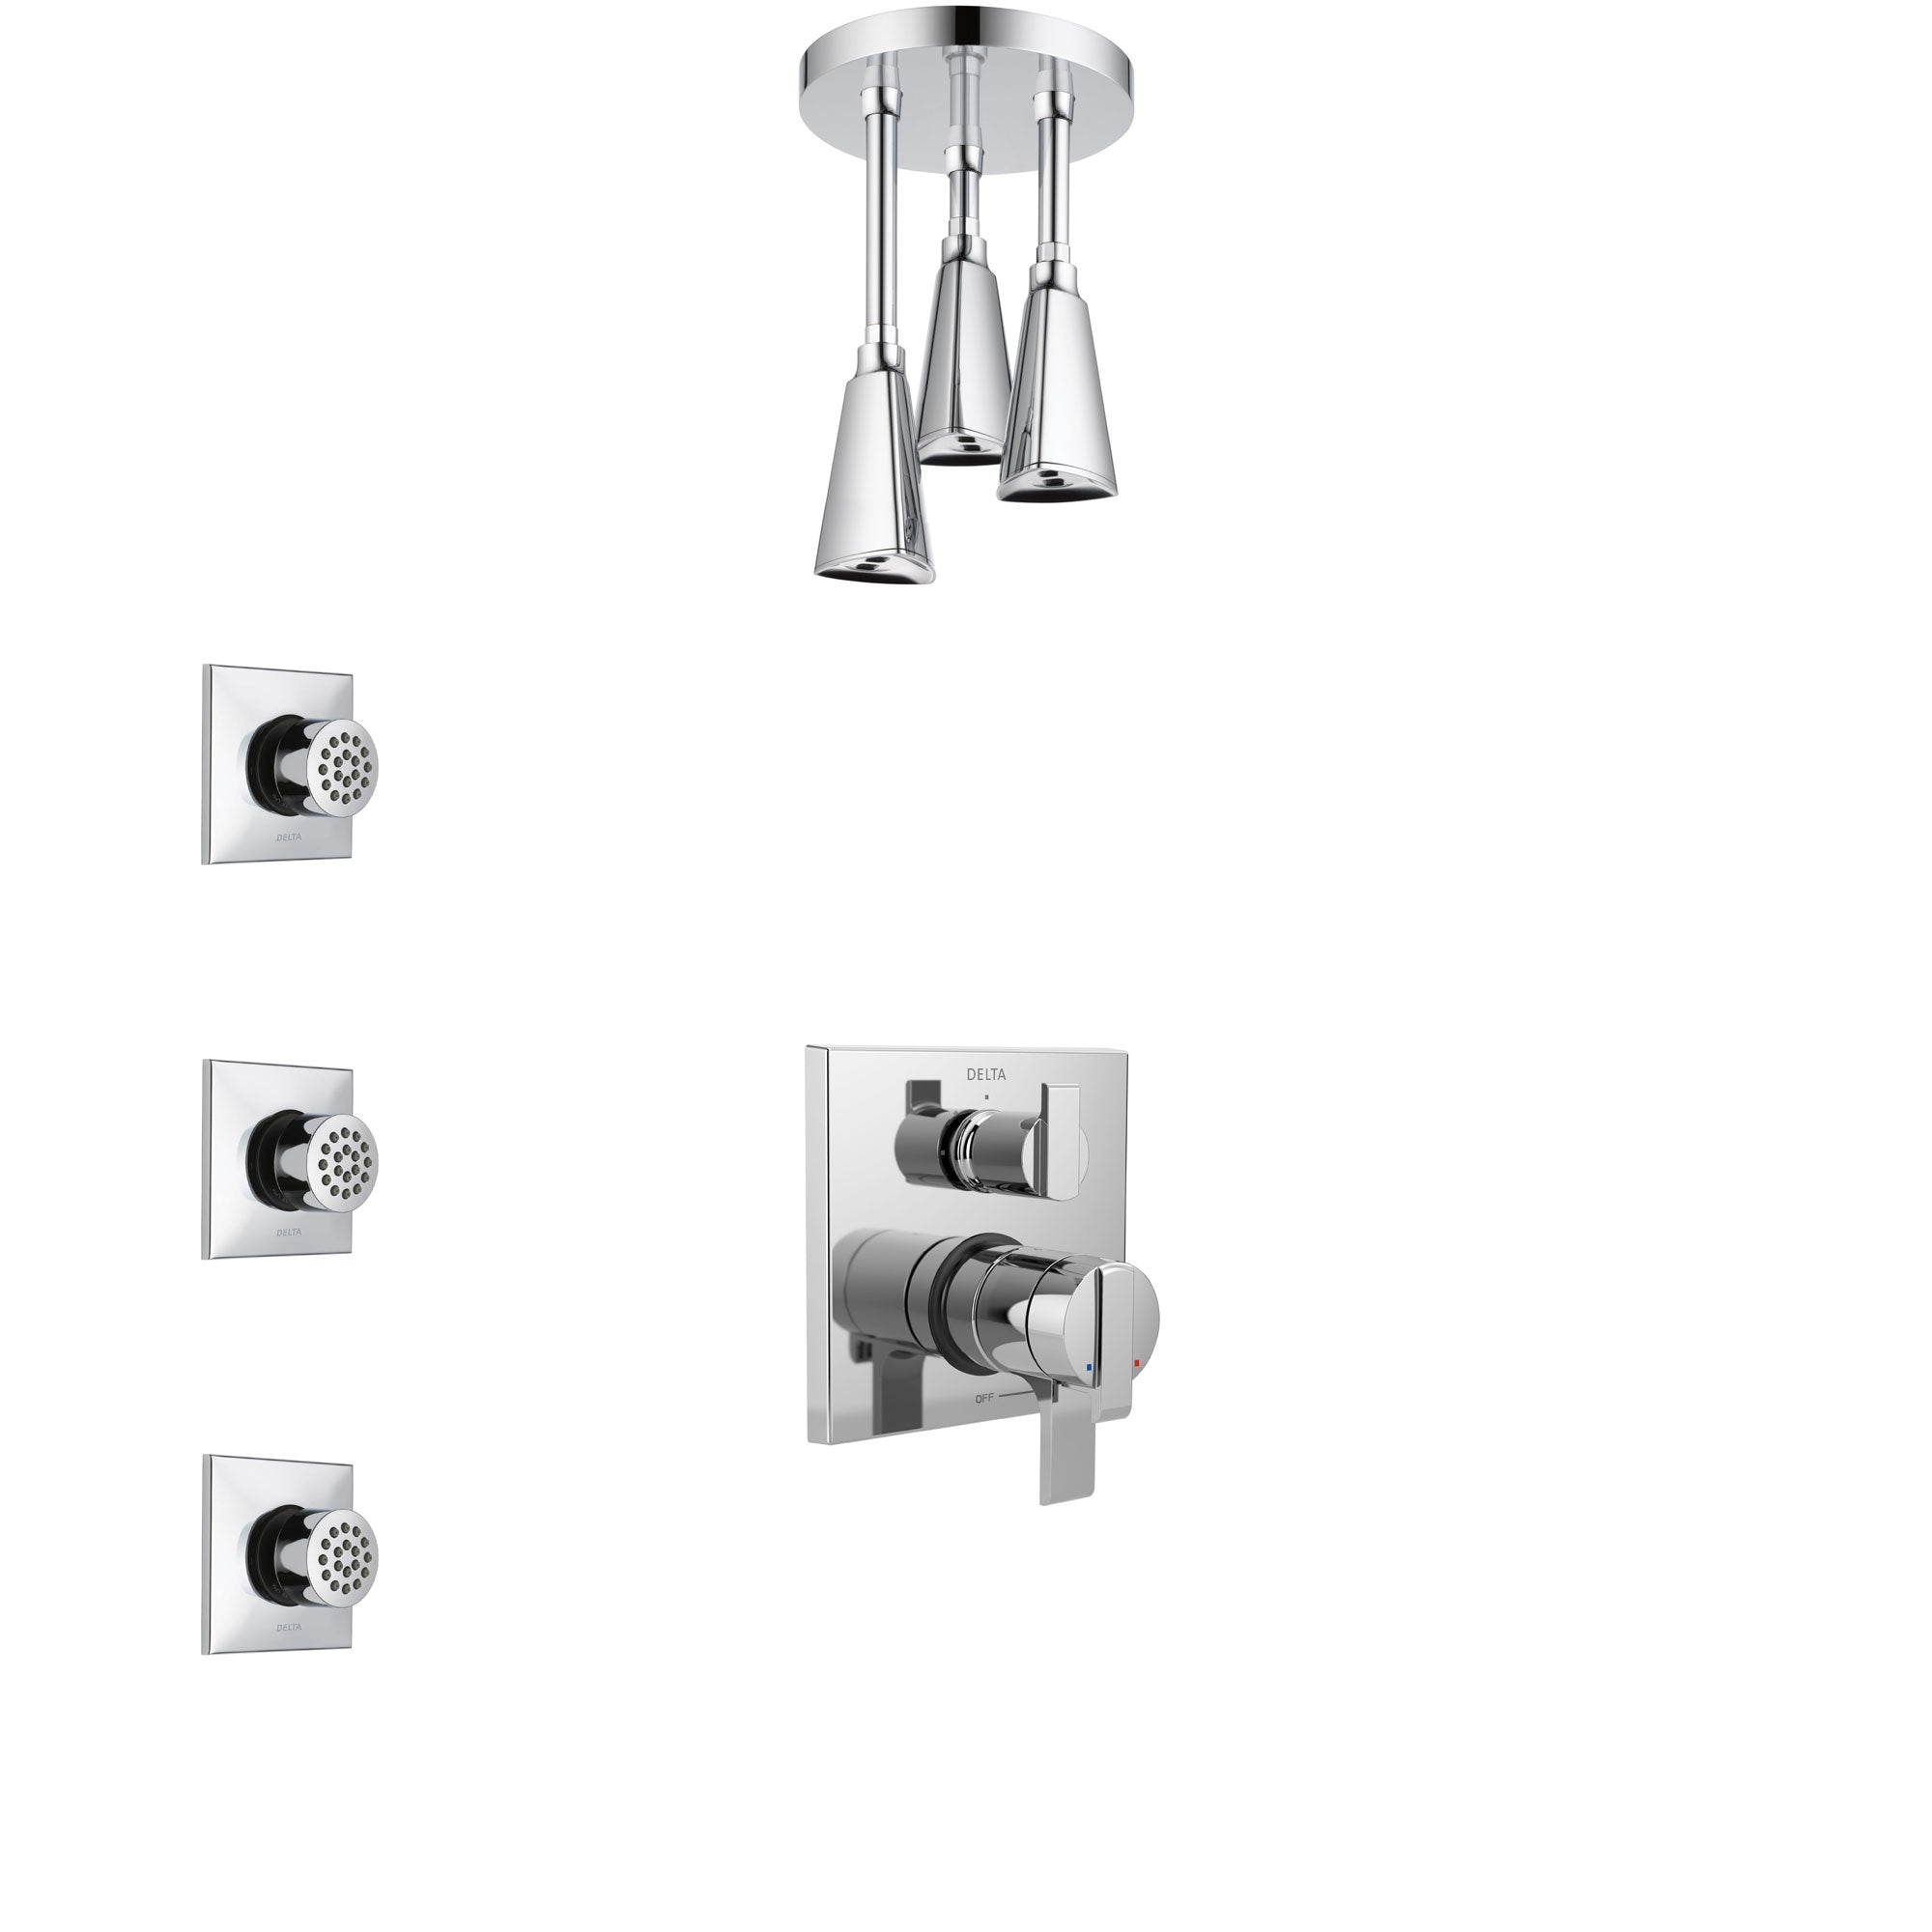 Delta Ara Chrome Finish Shower System with Dual Control Handle, Integrated 3-Setting Diverter, Ceiling Mount Showerhead, and 3 Body Sprays SS278674